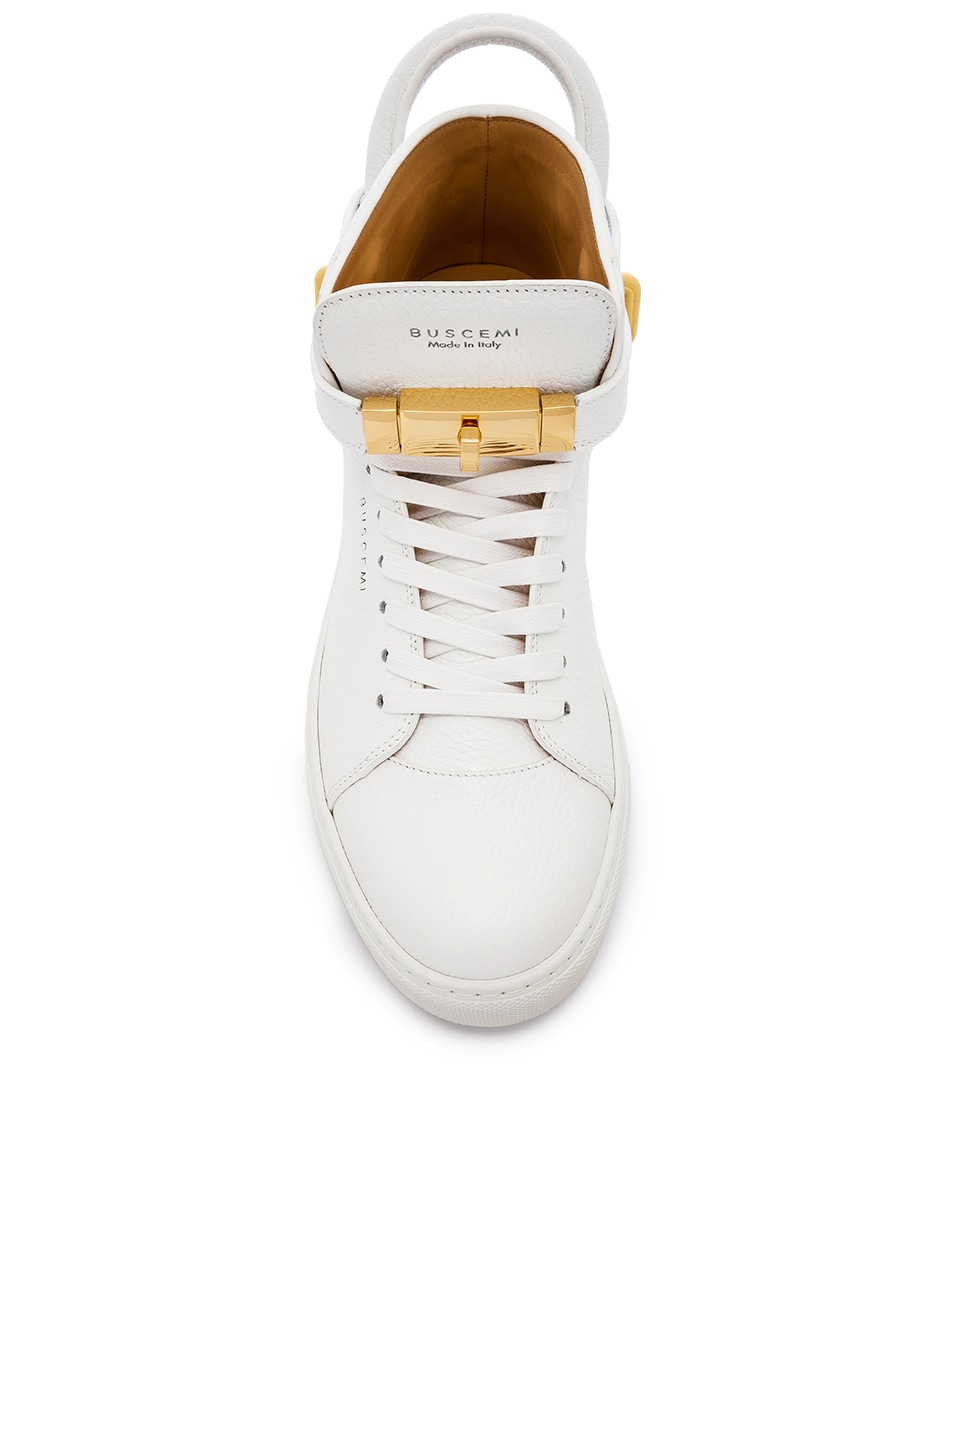 Image 4 of Buscemi 100MM High Top Pebbled Leather Sneakers in White